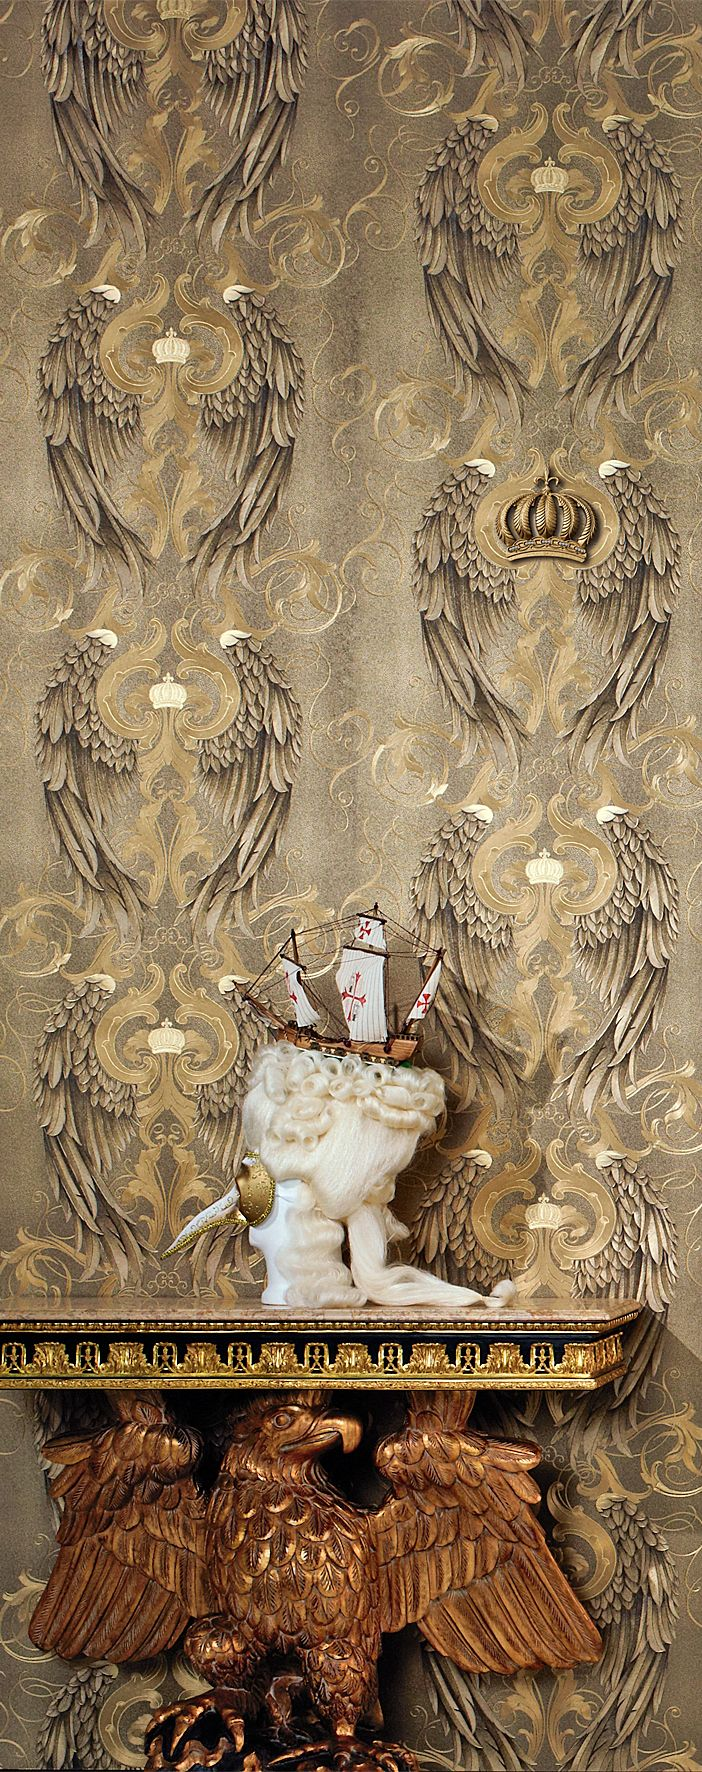 GLOOCKLER ANGEL WINGS Feature wall wallpaper, Angel